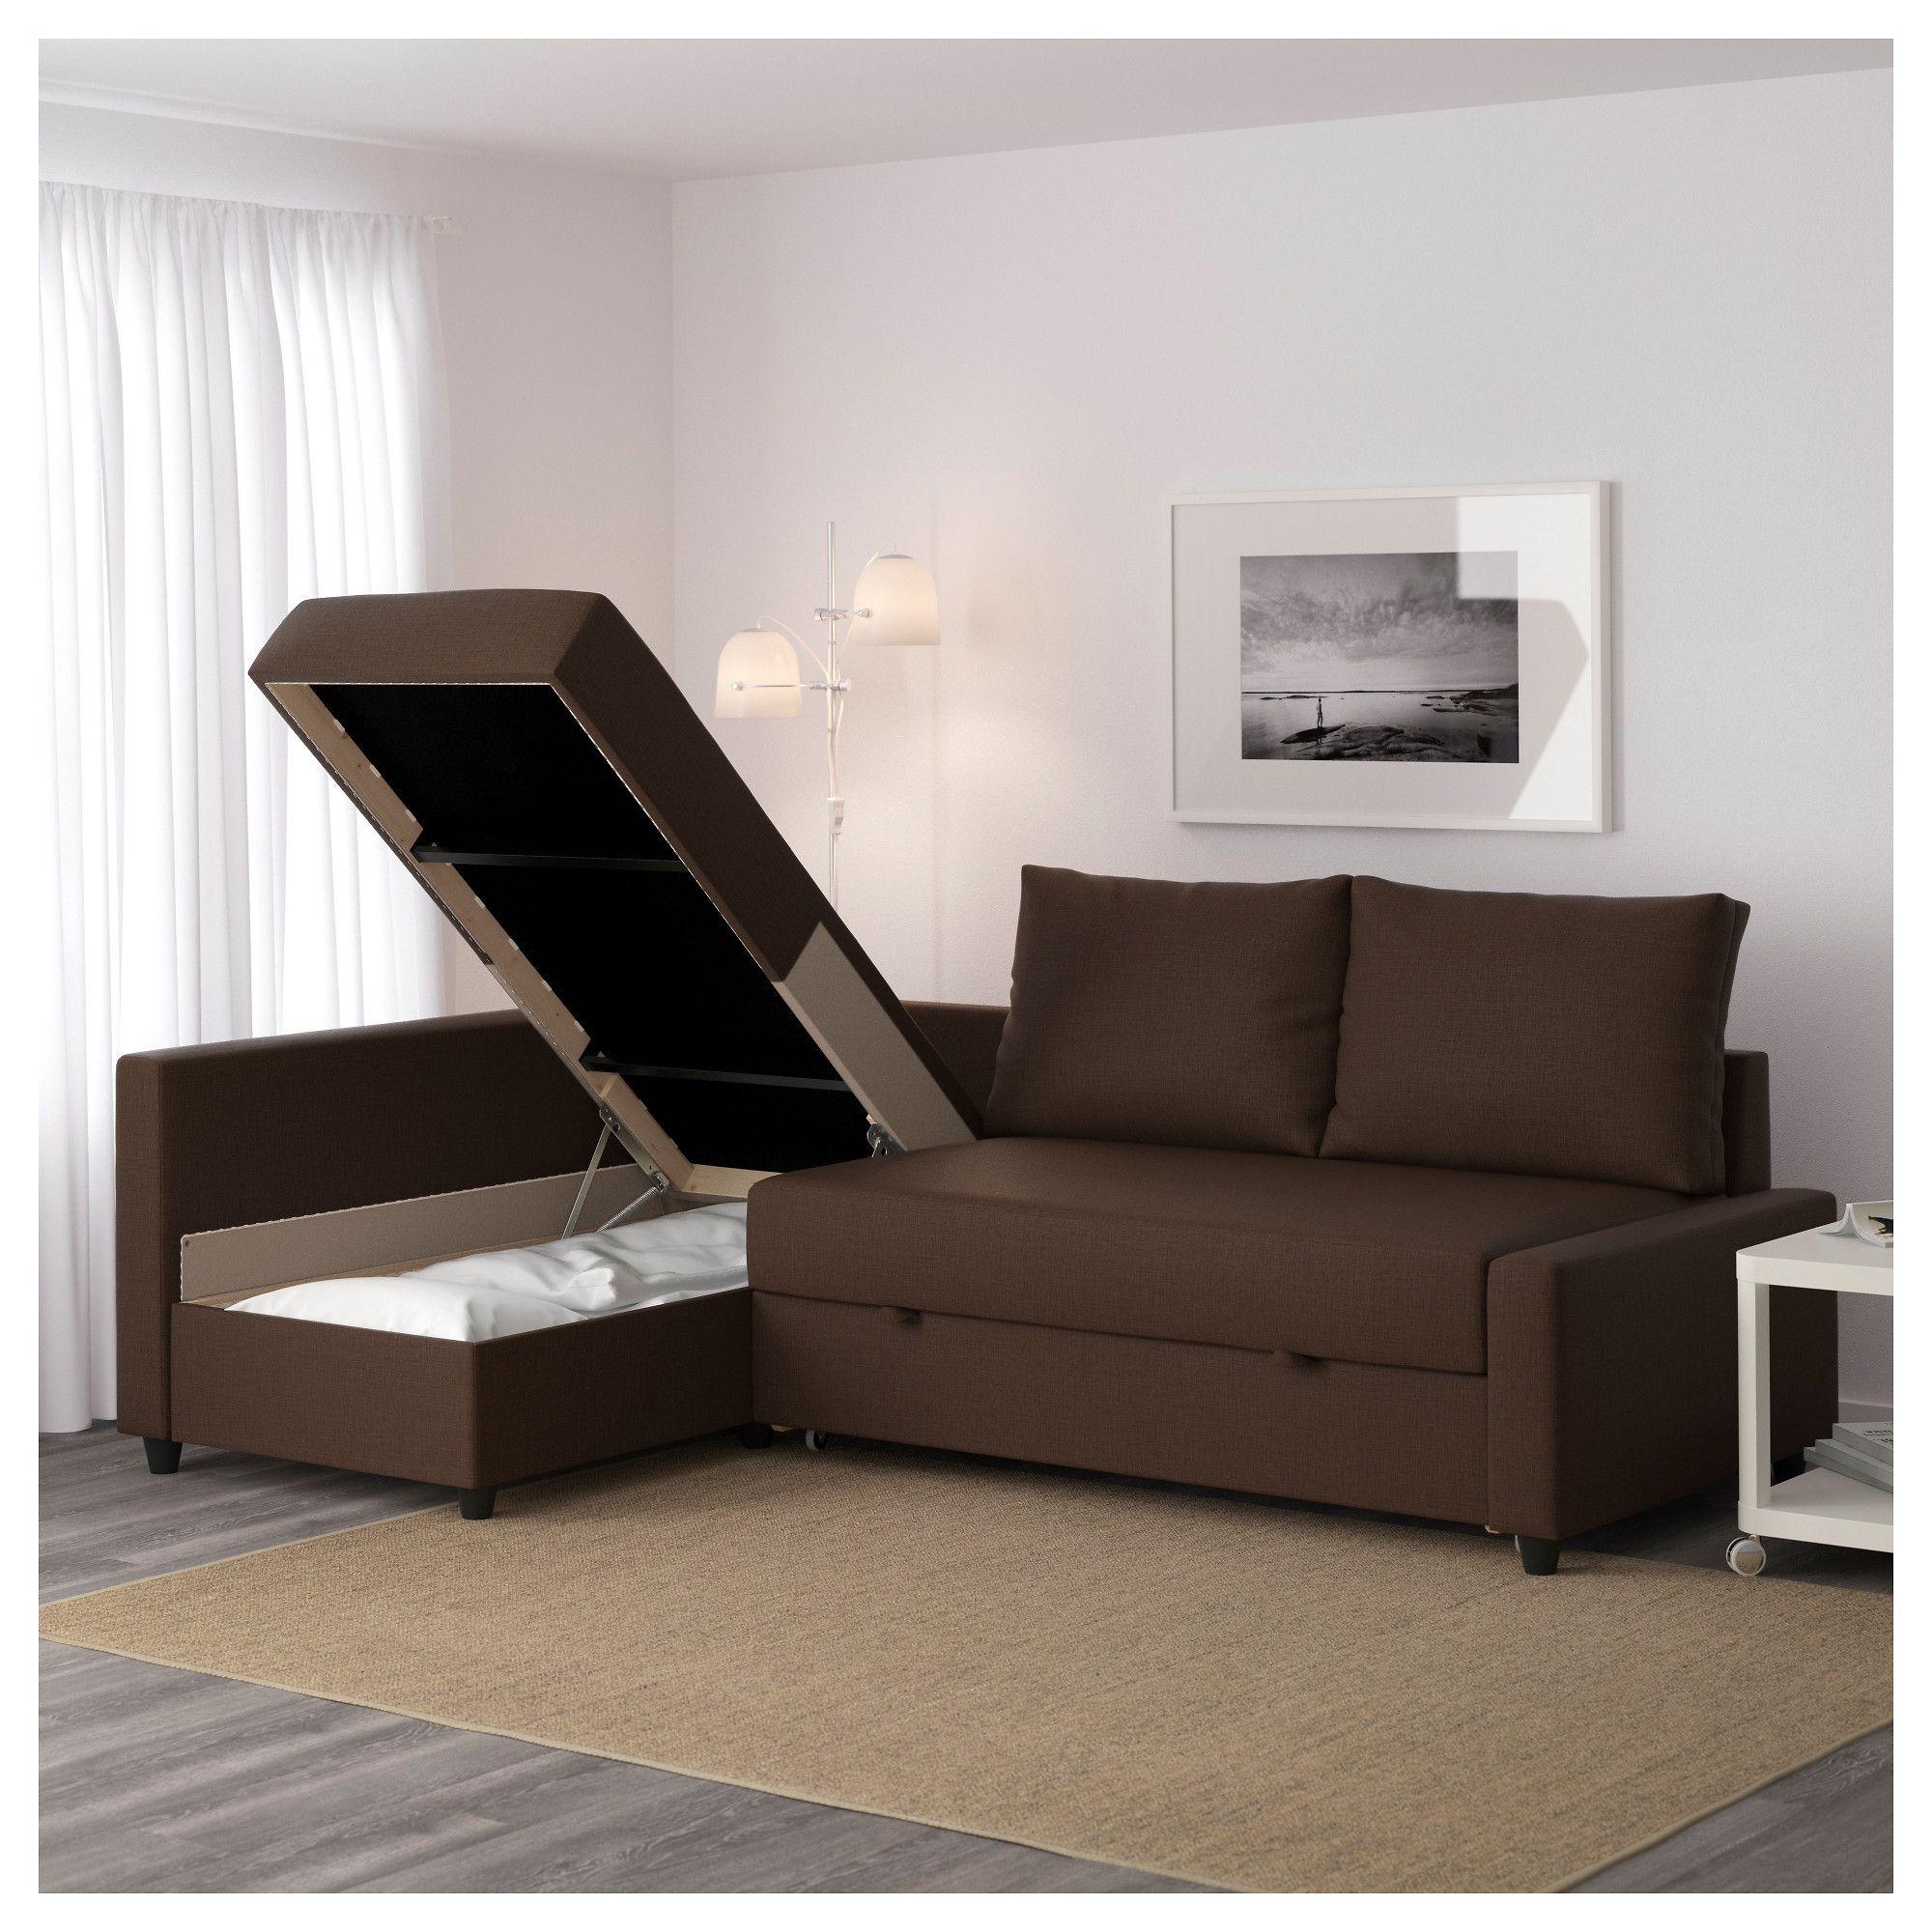 Furniture And Home Furnishings In 2019 Products Corner